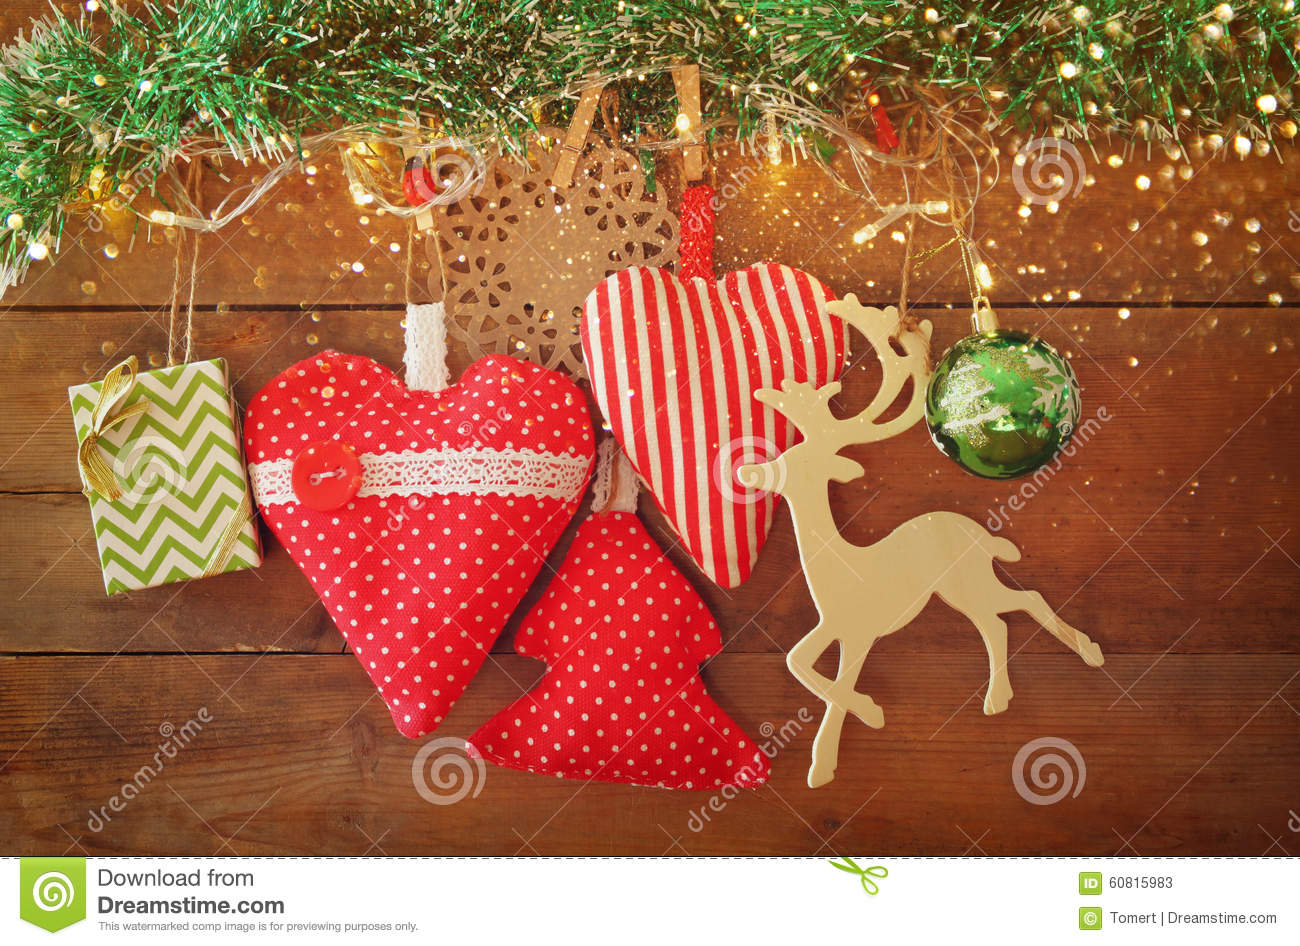 Retro Weihnachtsbilder.Christmas Image Of Fabric Red Hearts And Tree Wooden Reindeer And